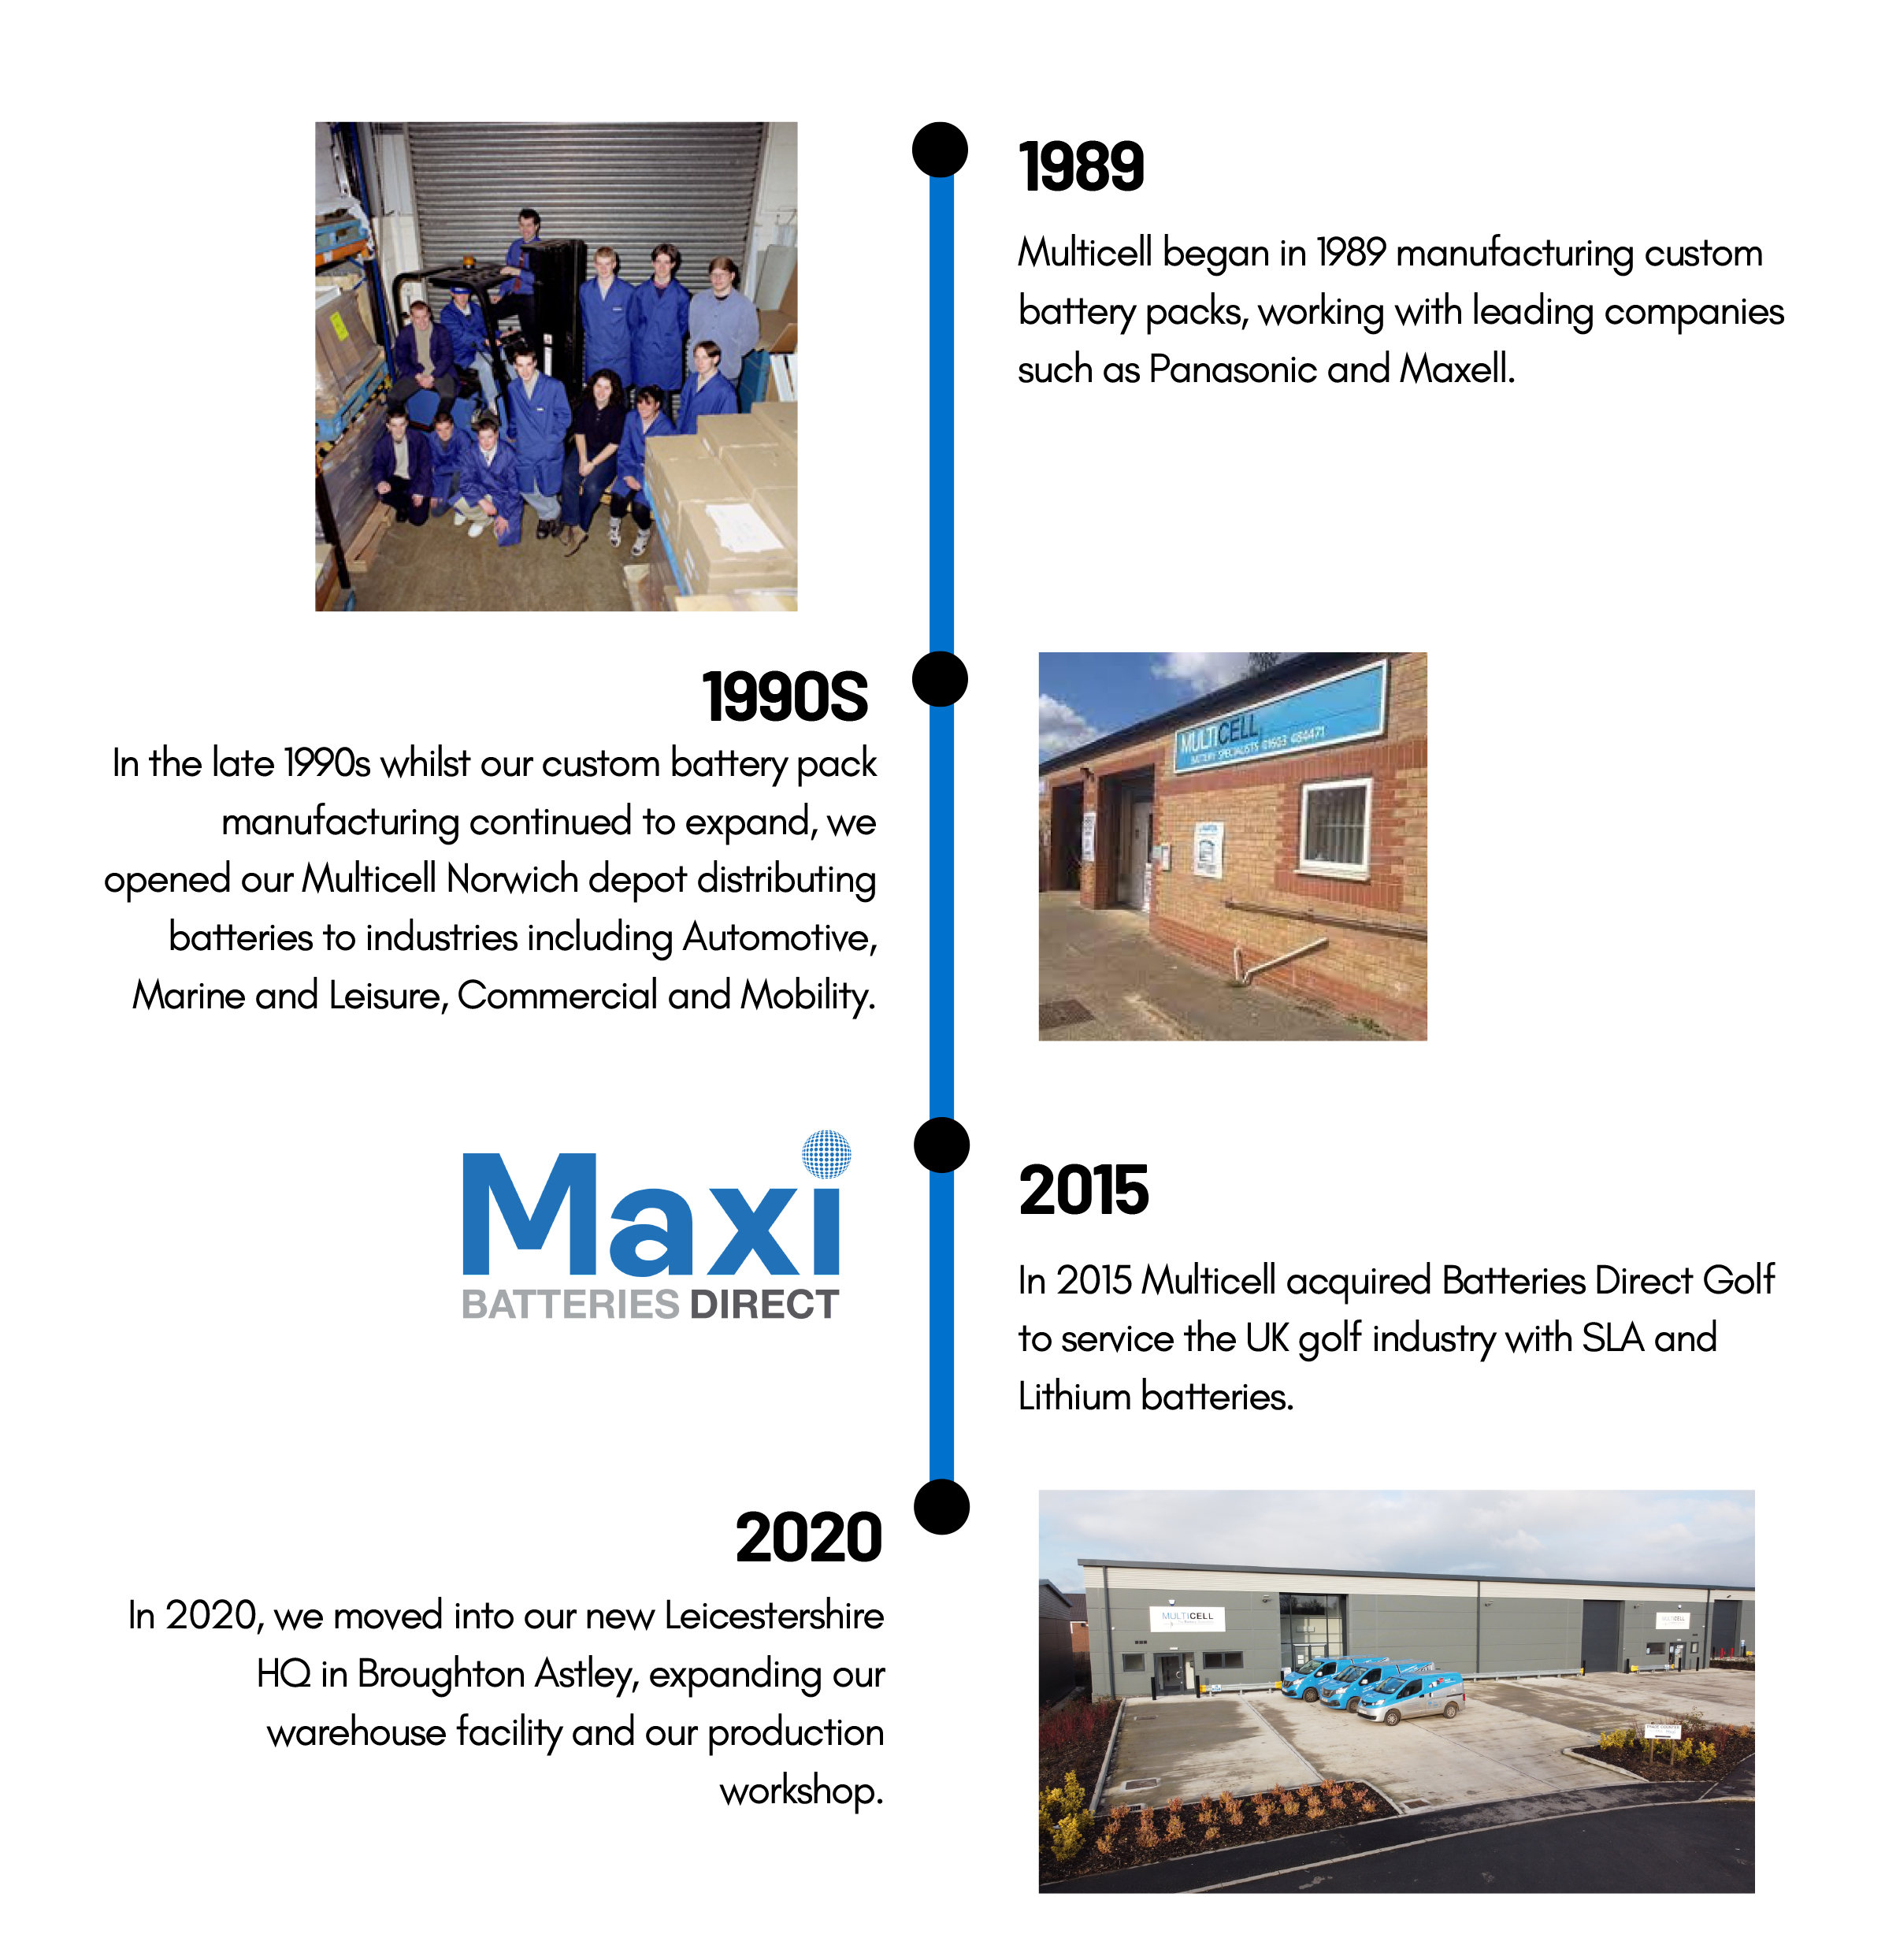 Multicell-History-Timeline